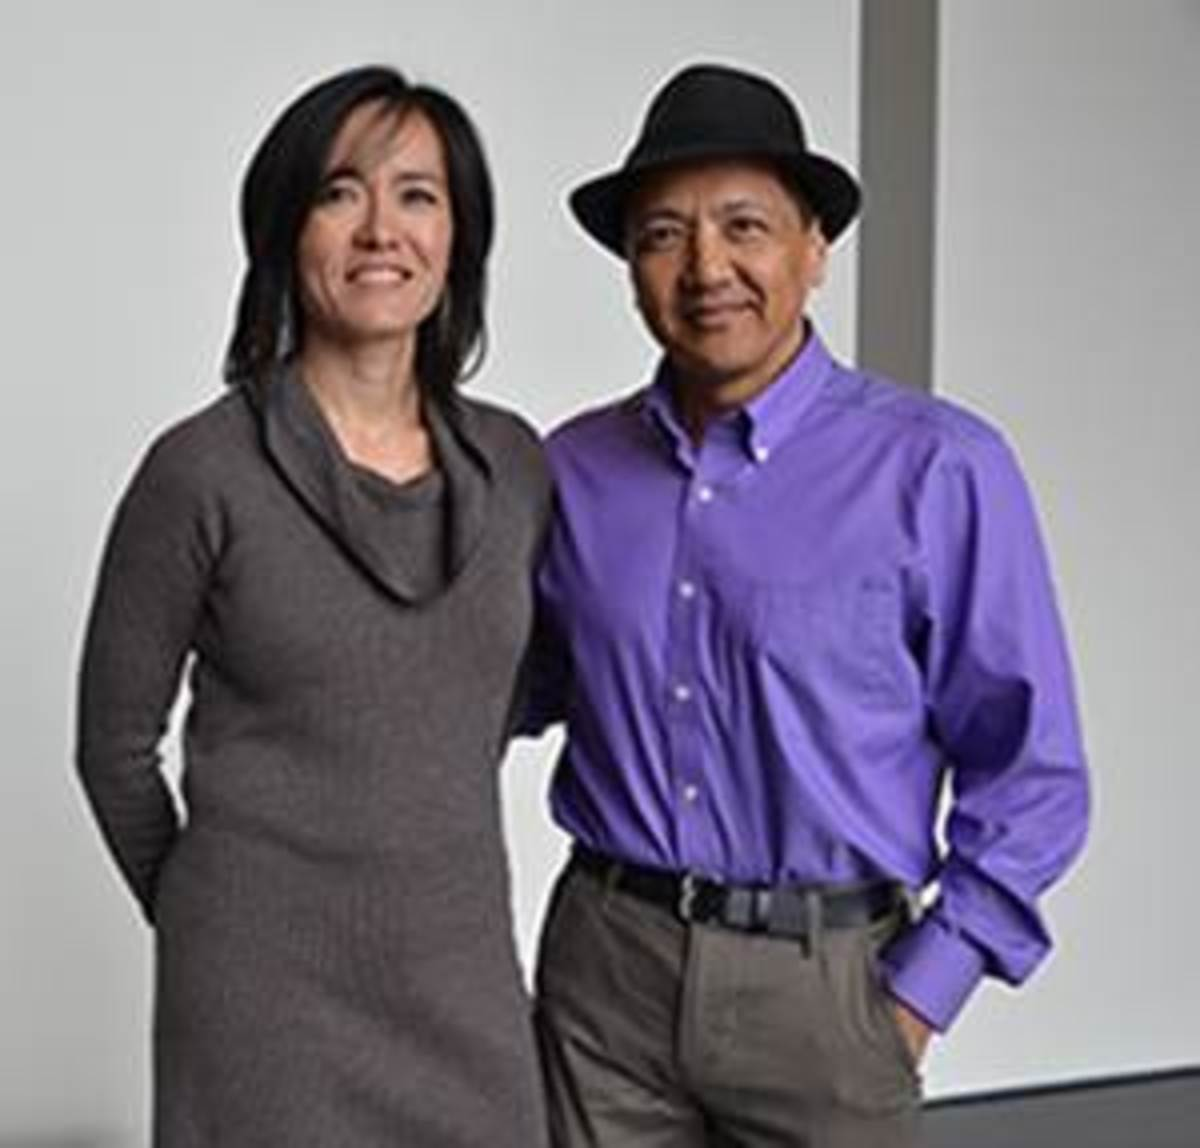 Pictured: Sealaska Heritage Insitute donors Dawn Dinwoodie and  Rod Worl.